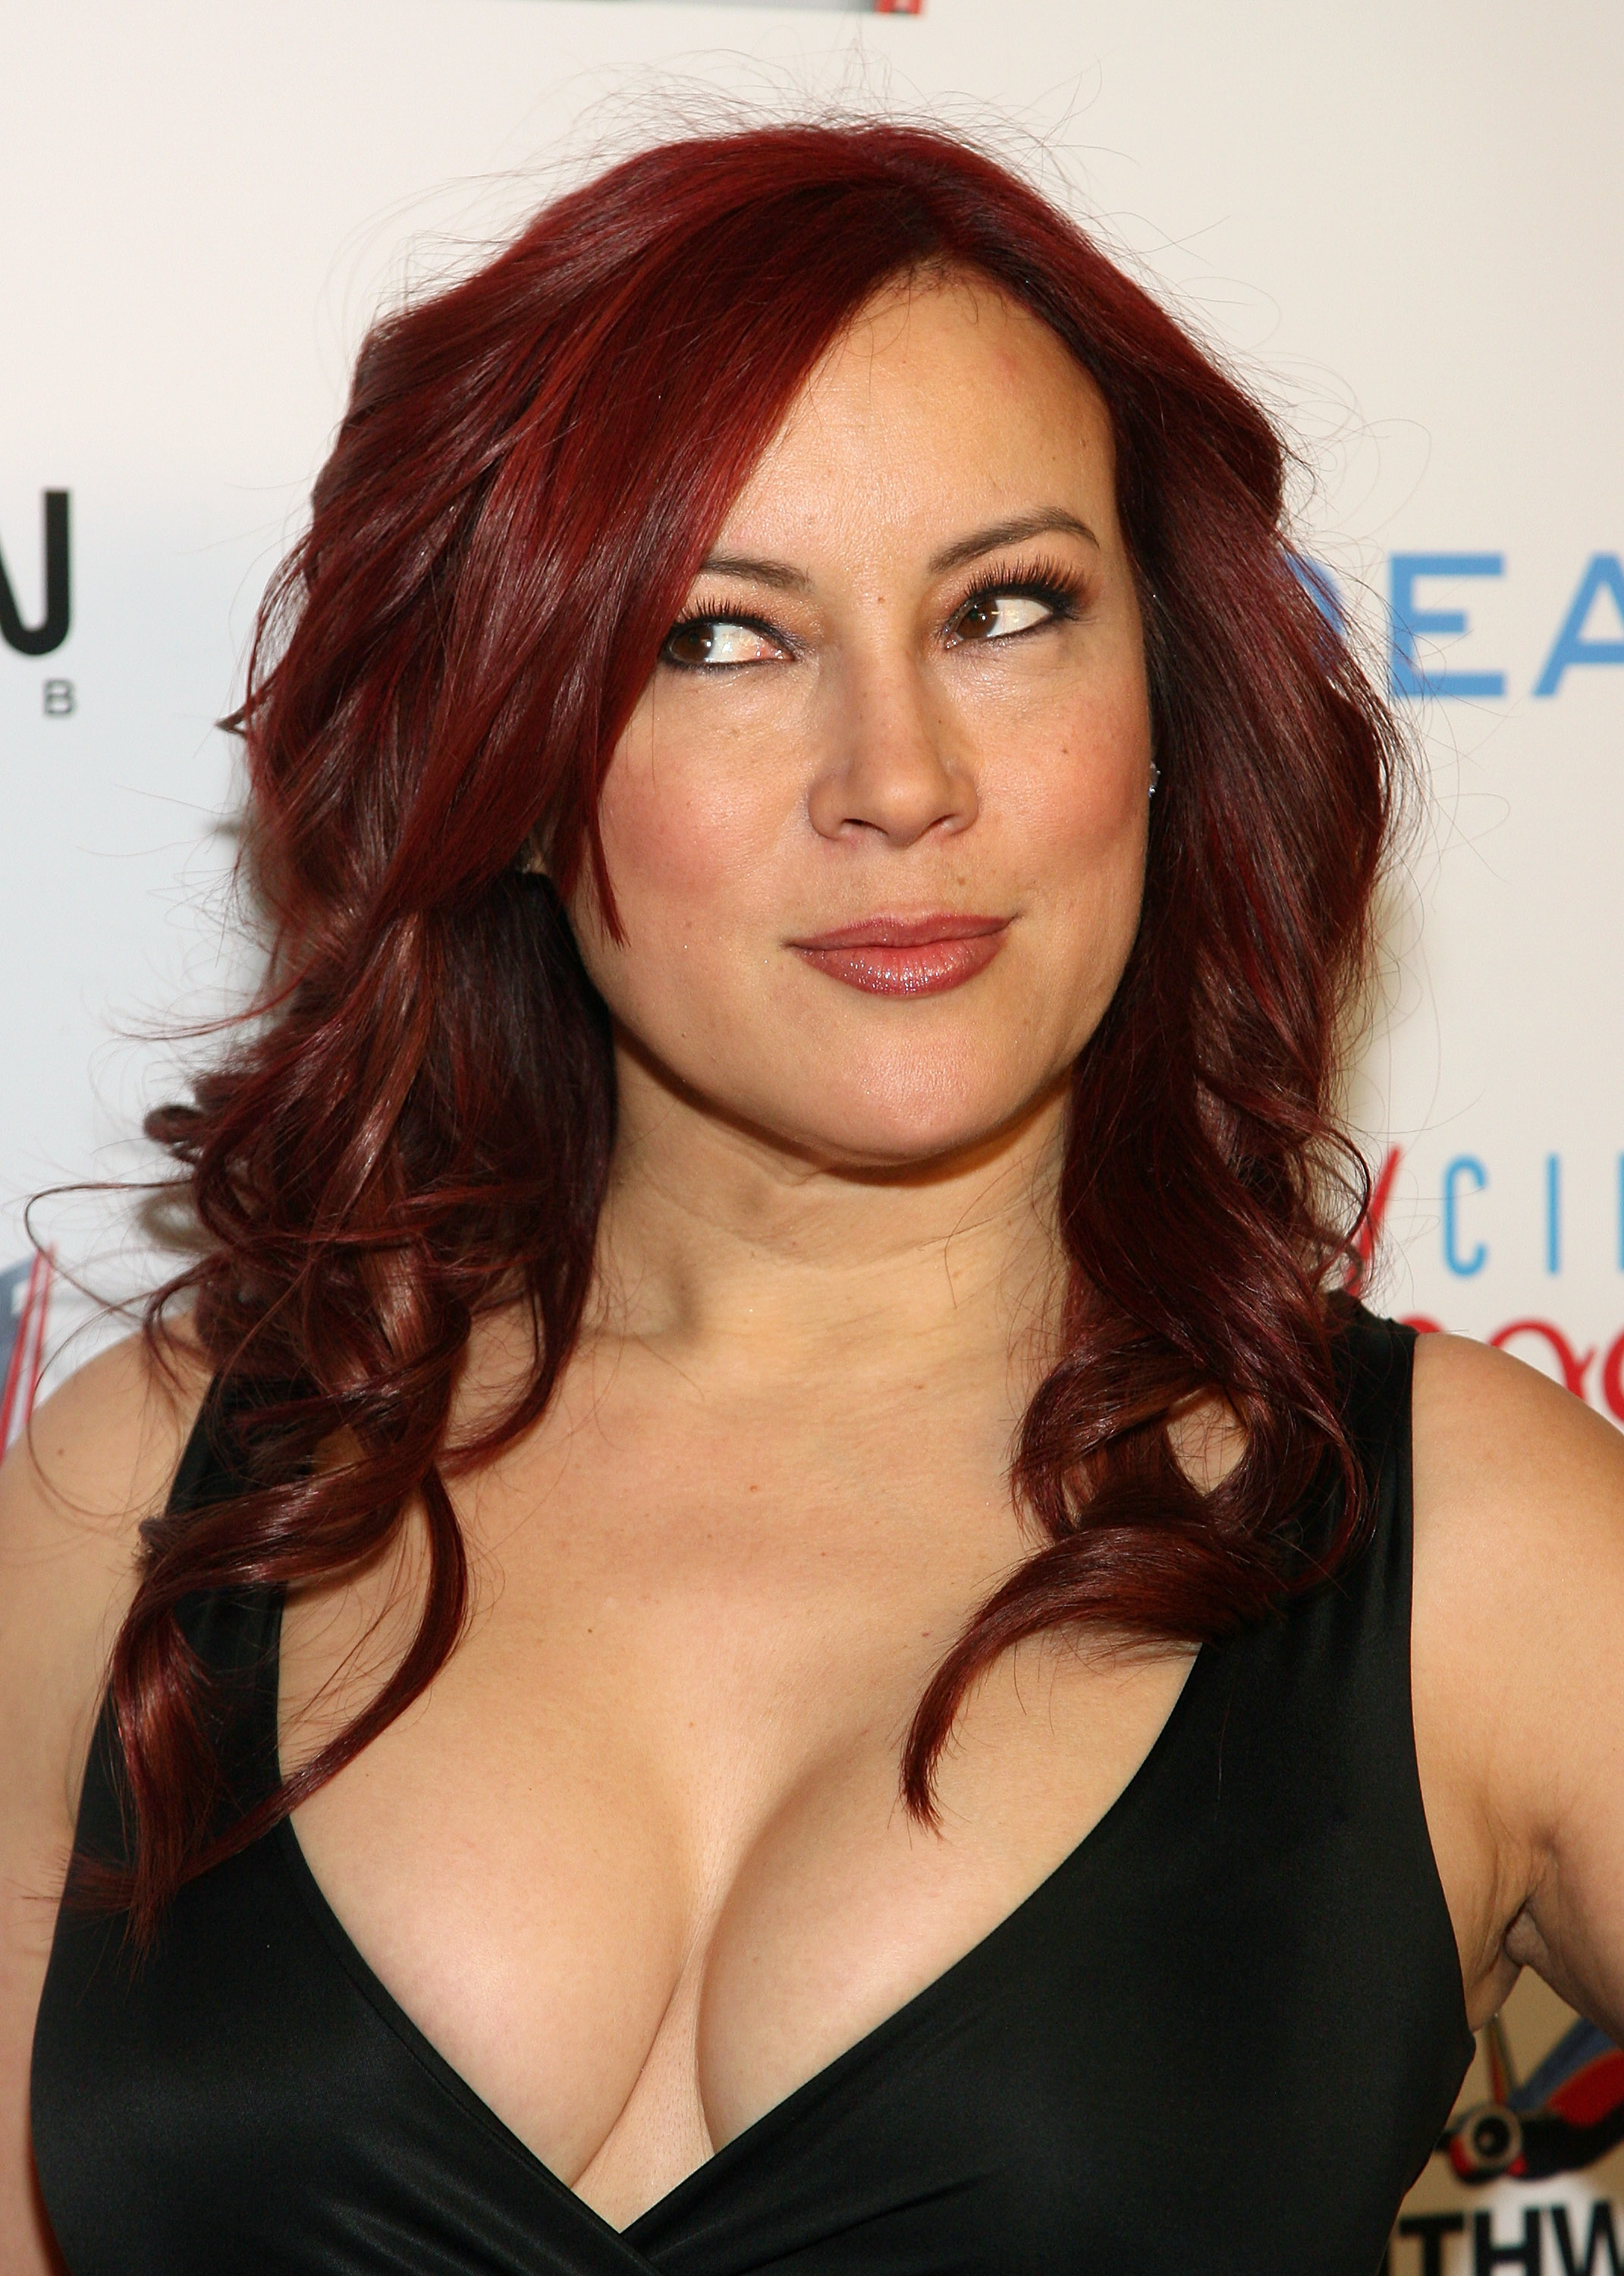 Jennifer Tilly | All the action from the casino floor: news, views and more